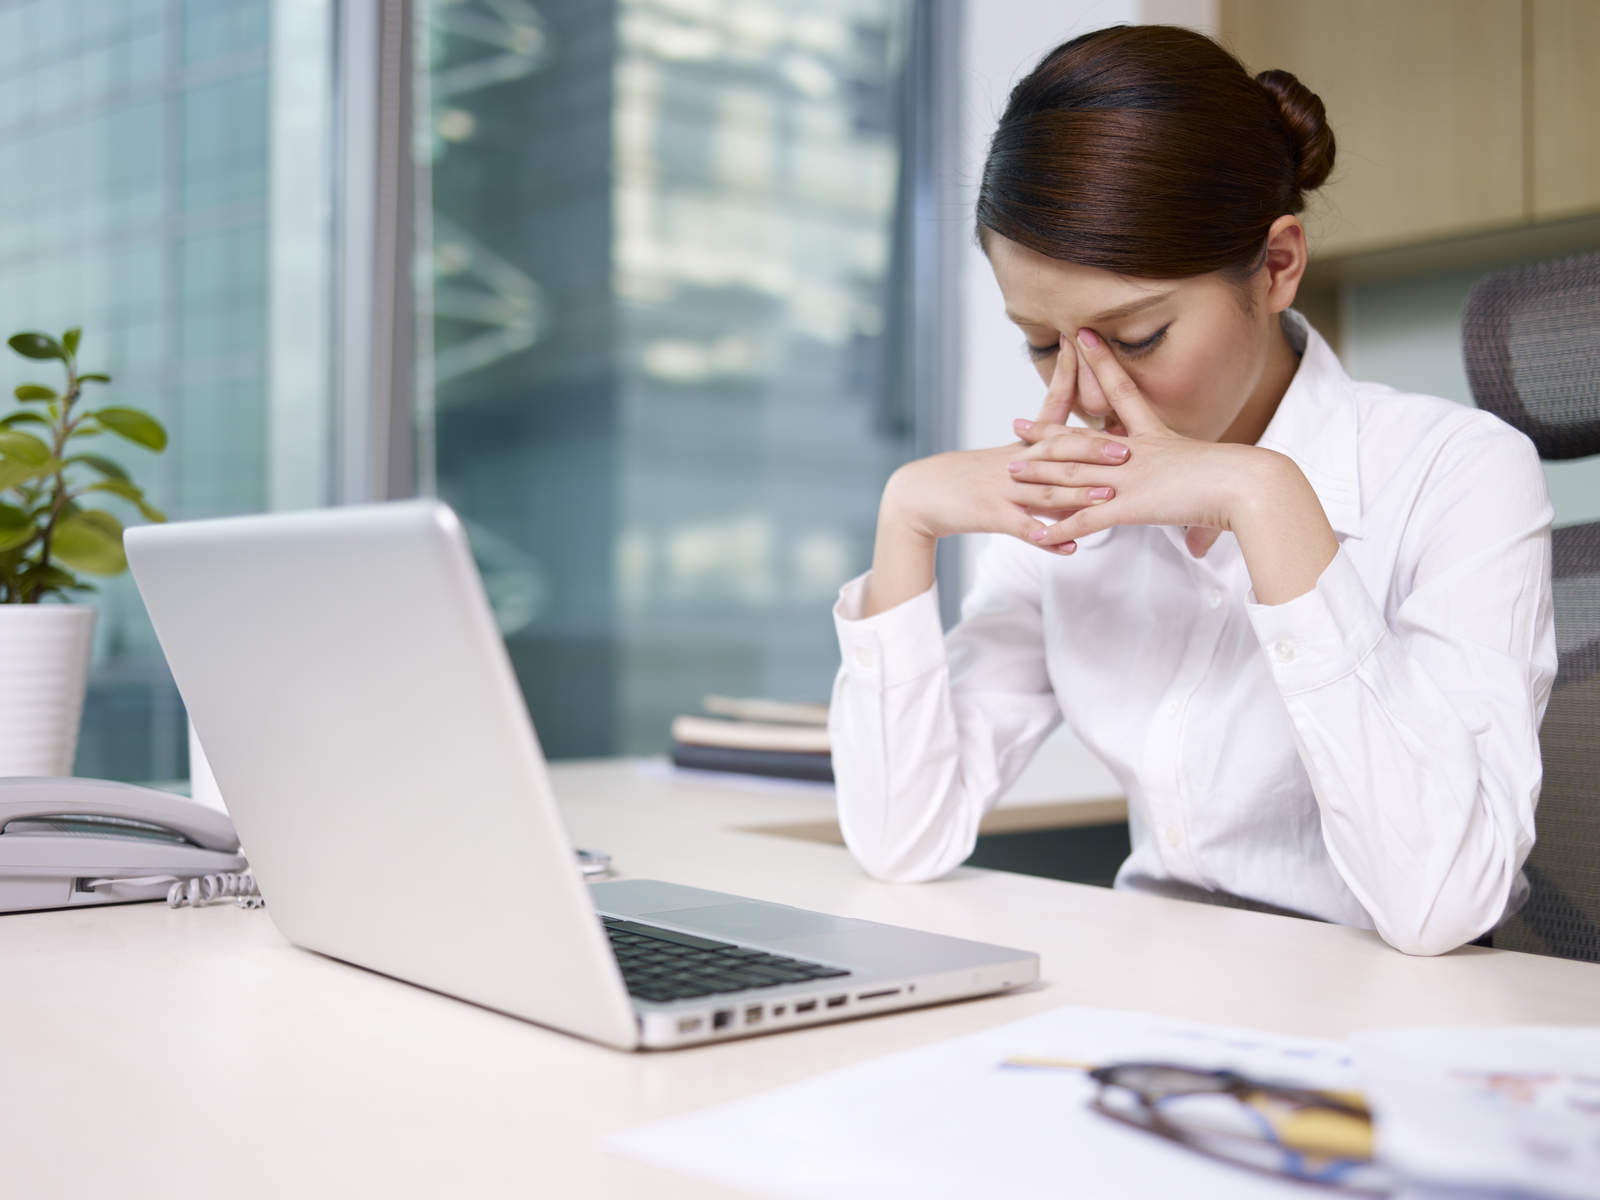 Stock photo of a businesswoman thinking at her desk, disappointedly